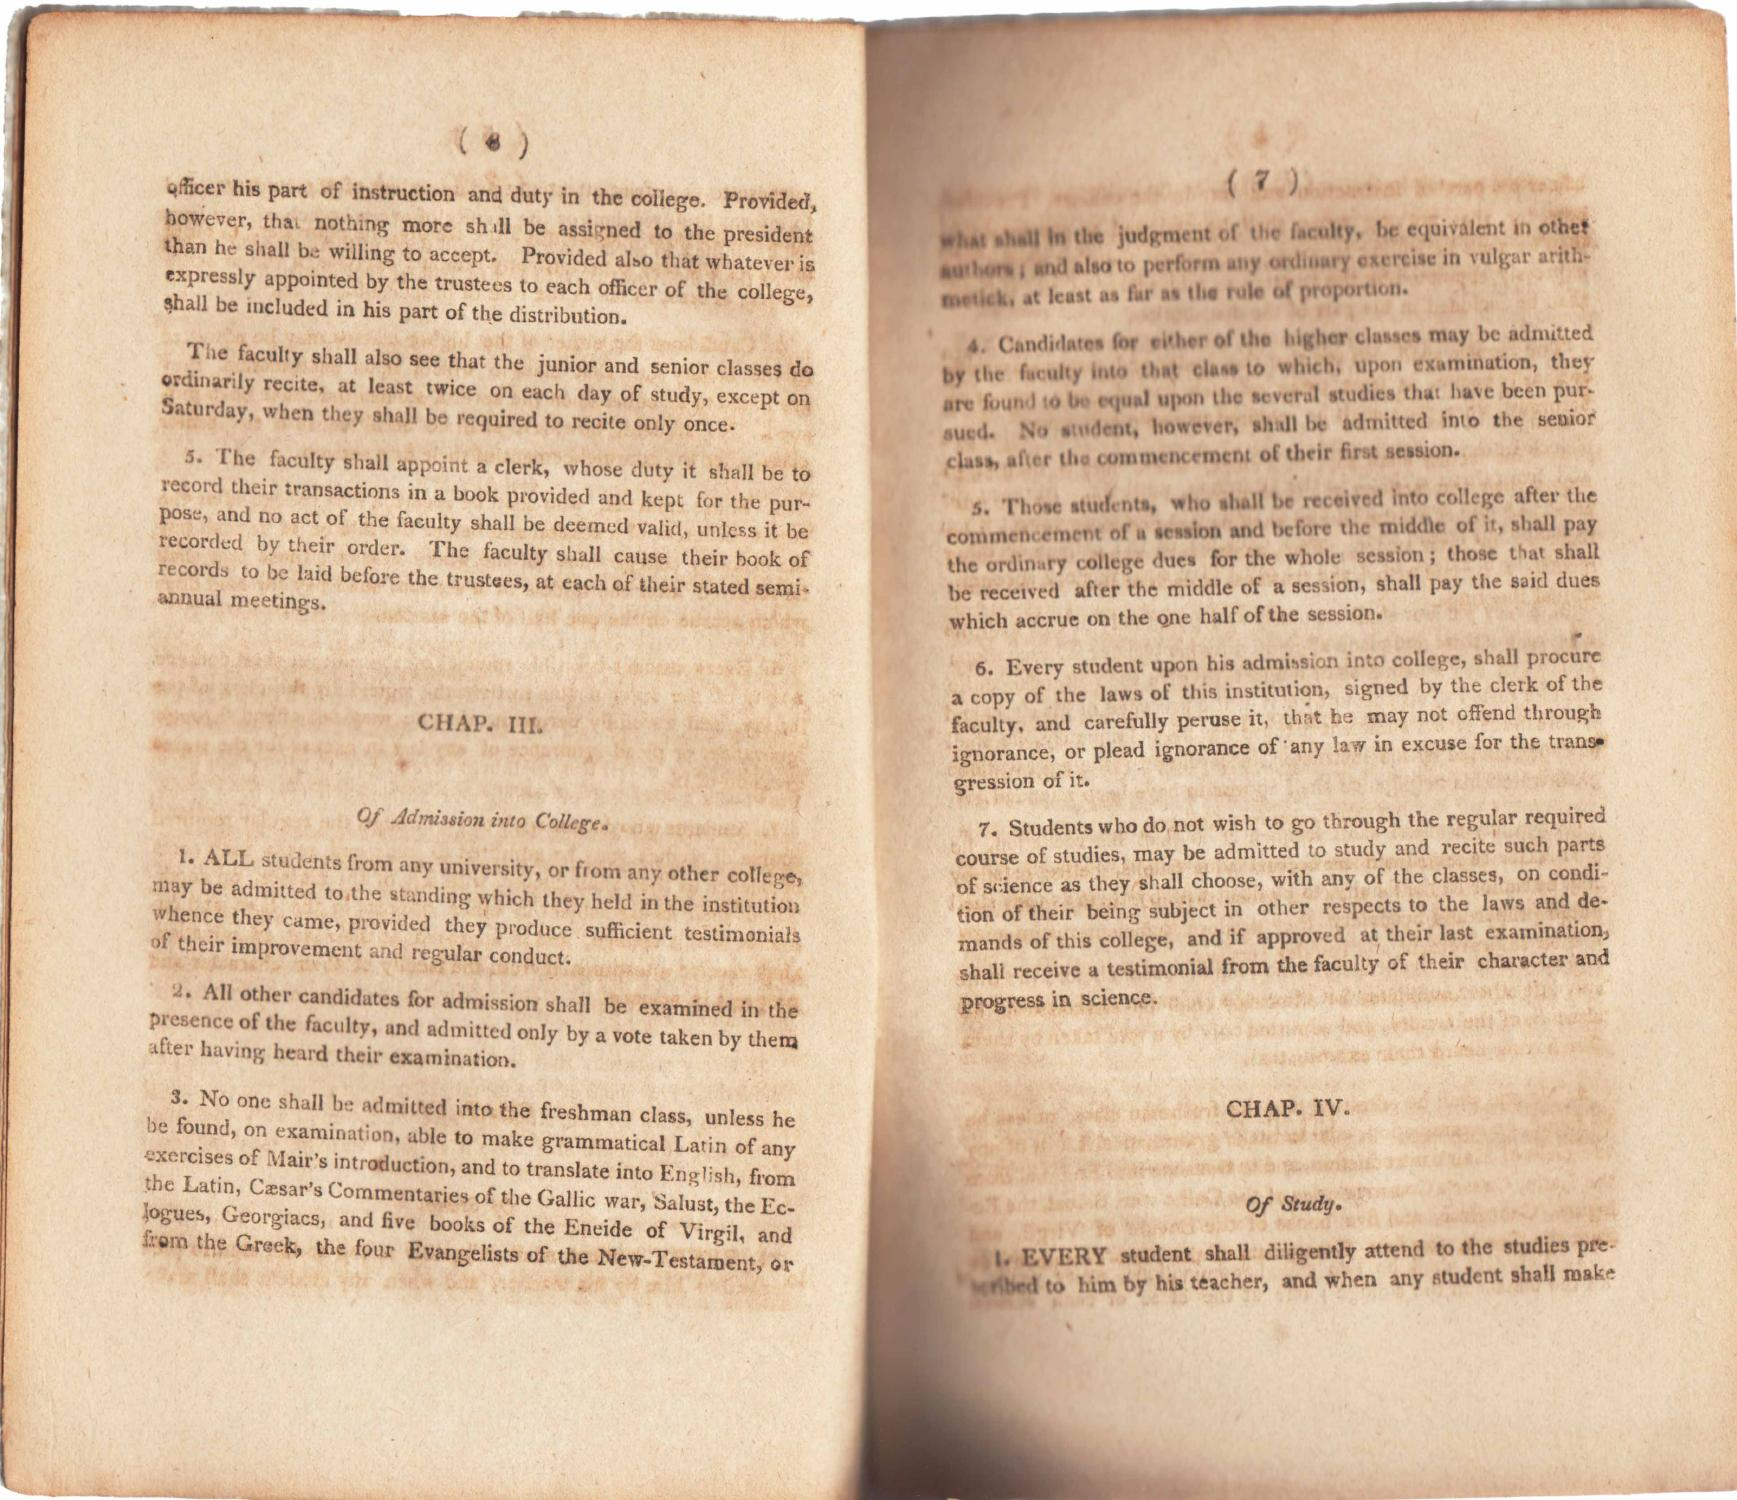 THE LAWS OF QUEEN'S COLLEGE IN NEW JERSEY (